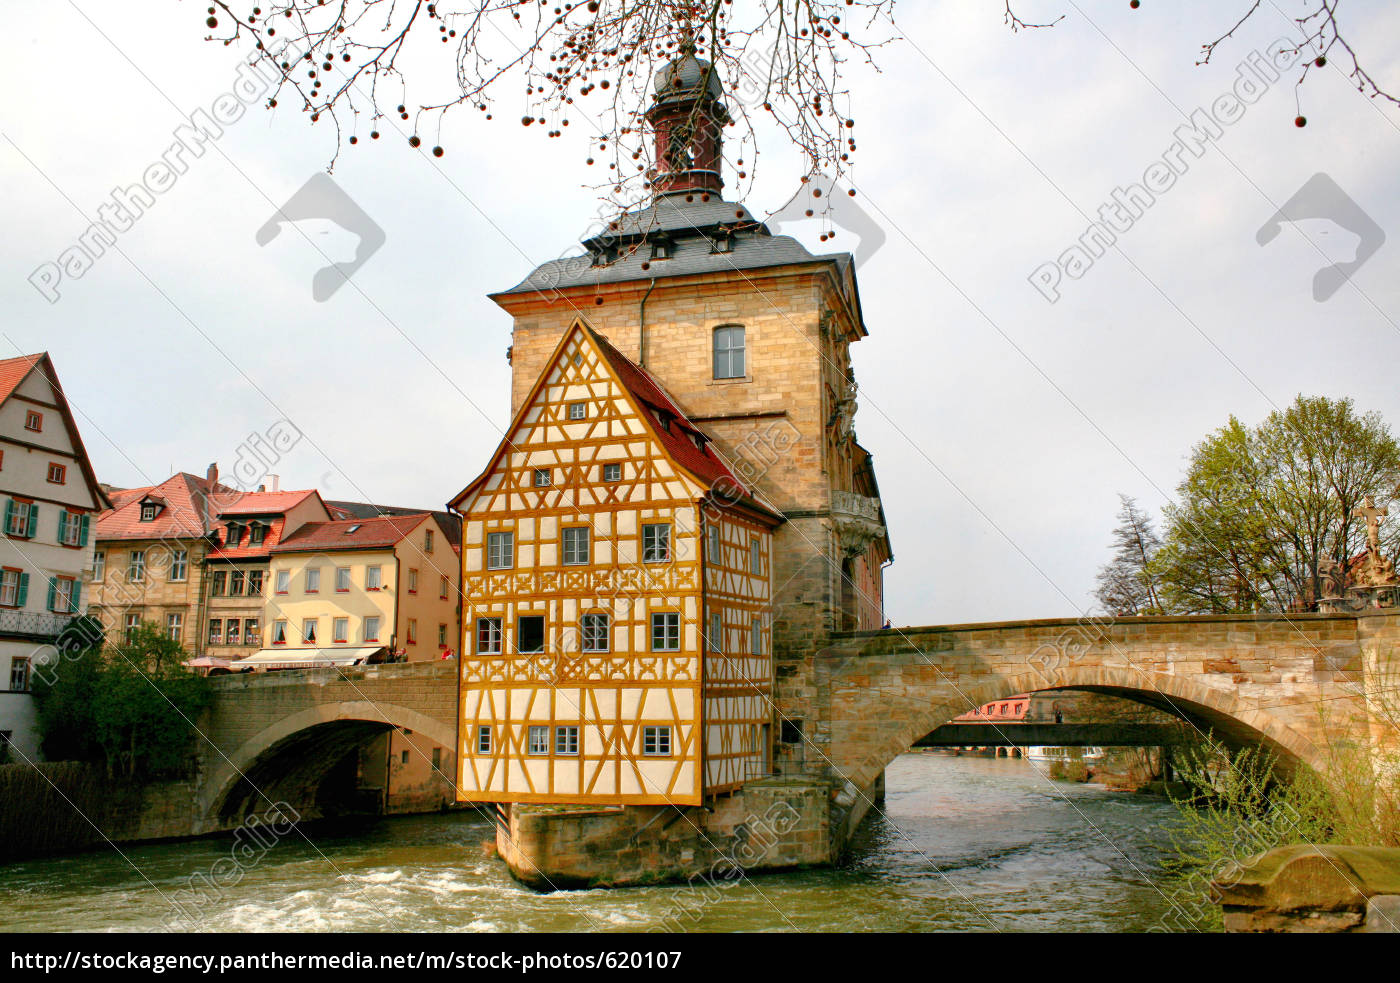 bridge, to, the, old, town, hall - 620107